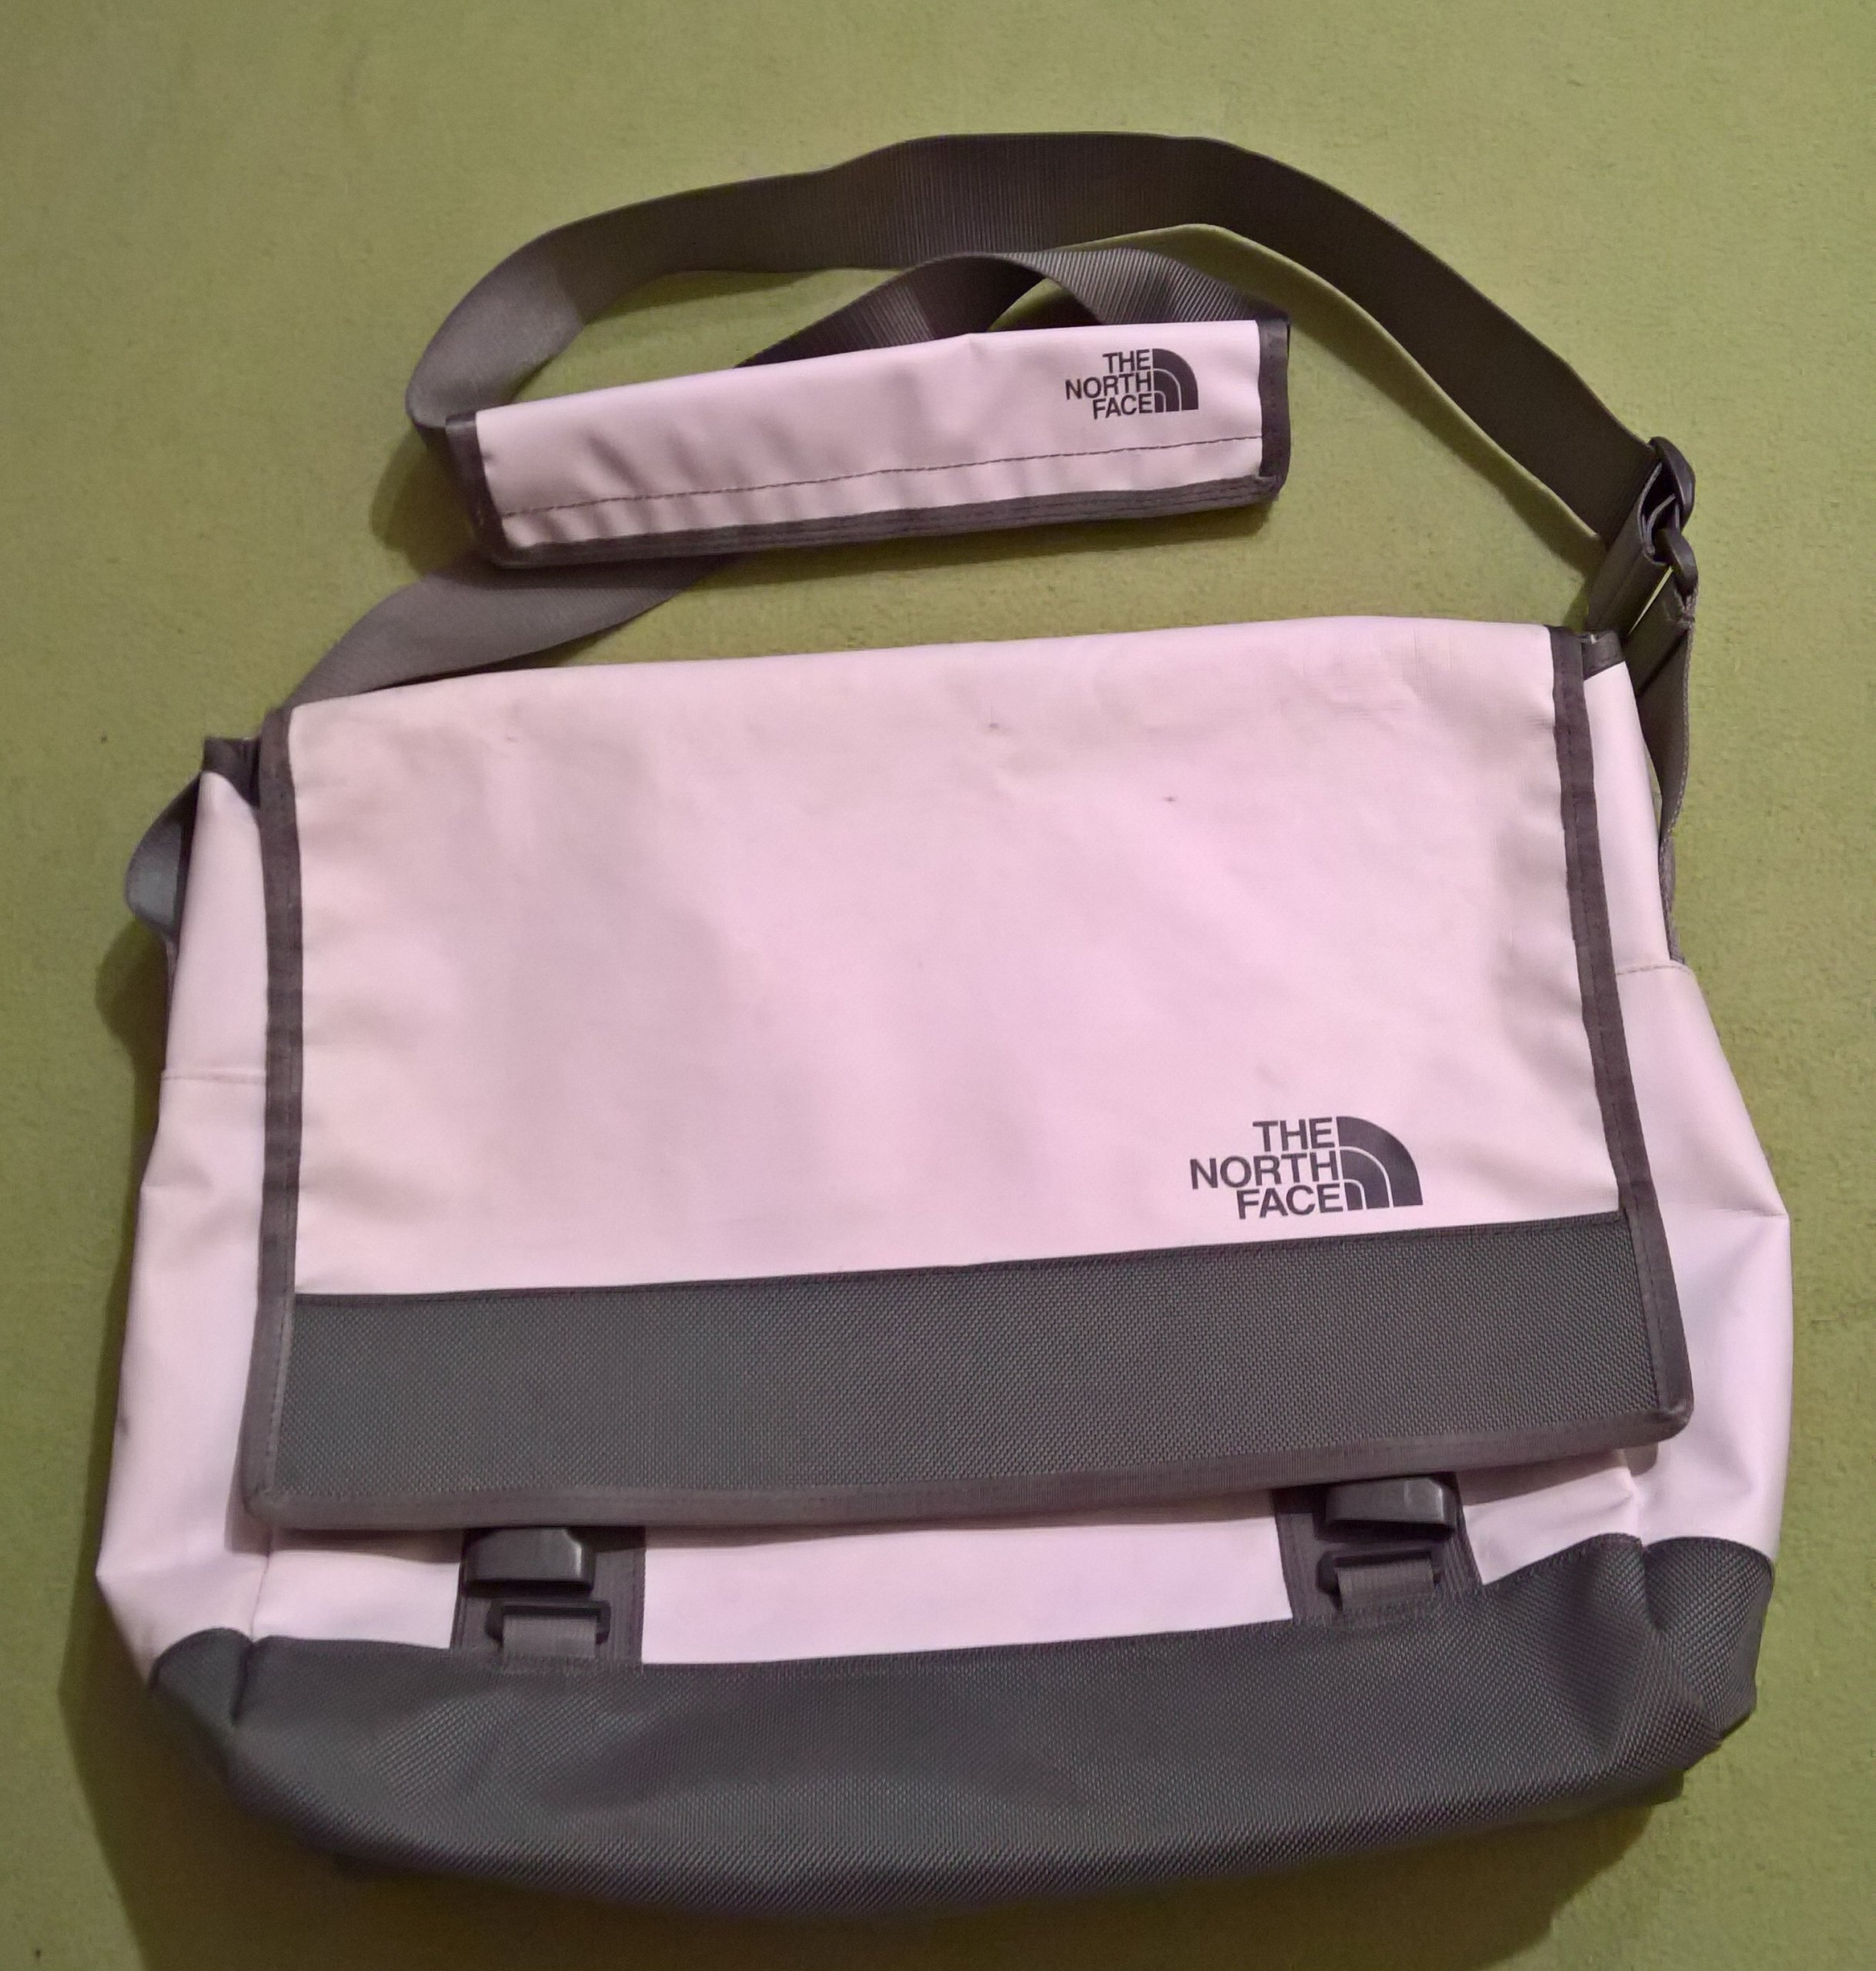 THE NORTH FACE BASE CAMP MESSENGER BAG M TORBA - 7229880076 ... 23510bad20a45